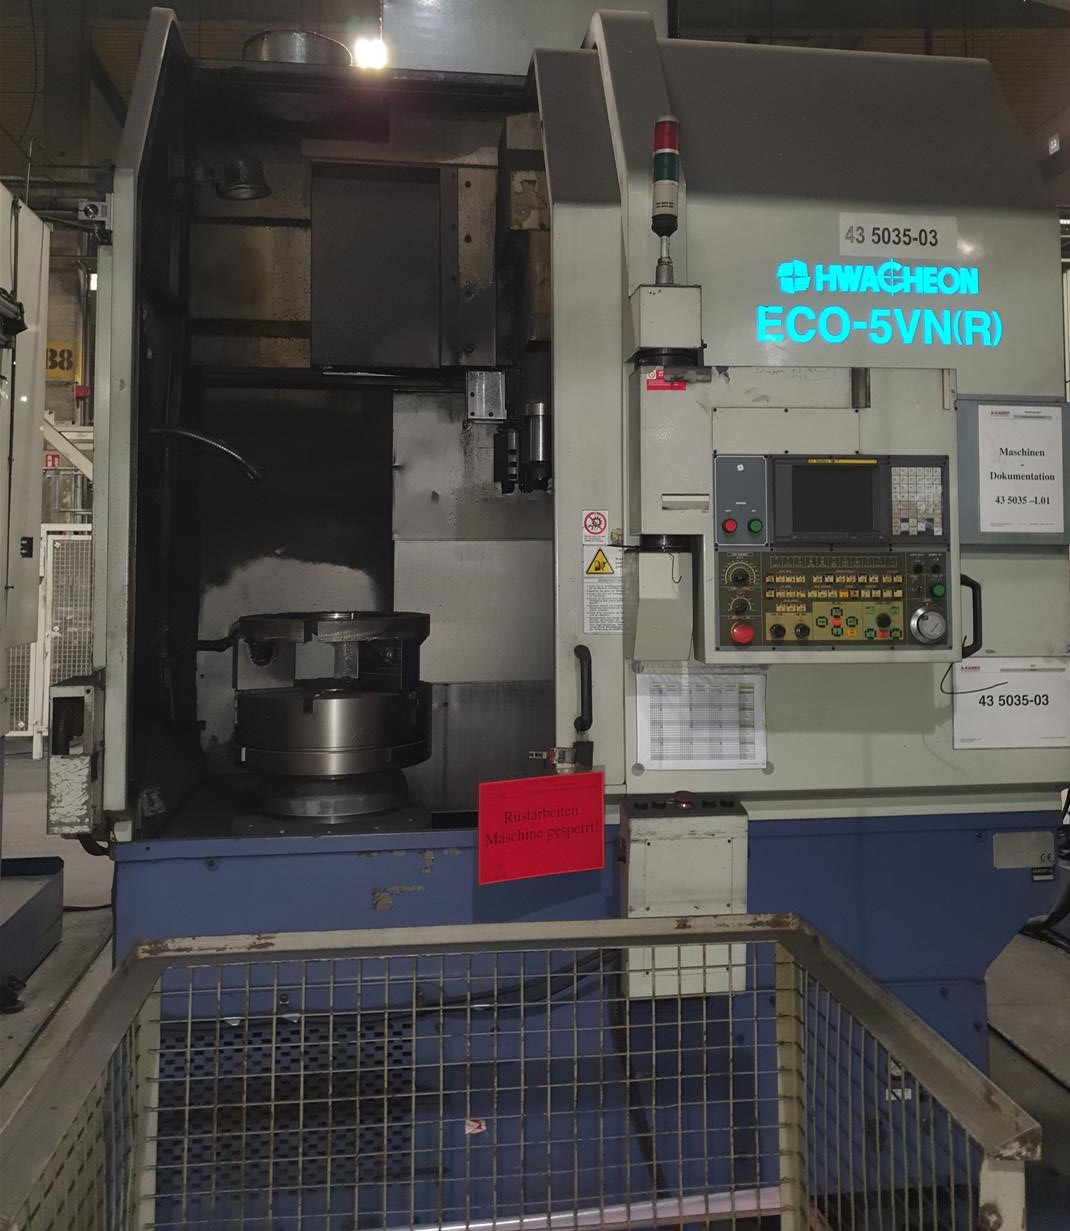 CNC VTL Hwacheon ECO 5 VN-R